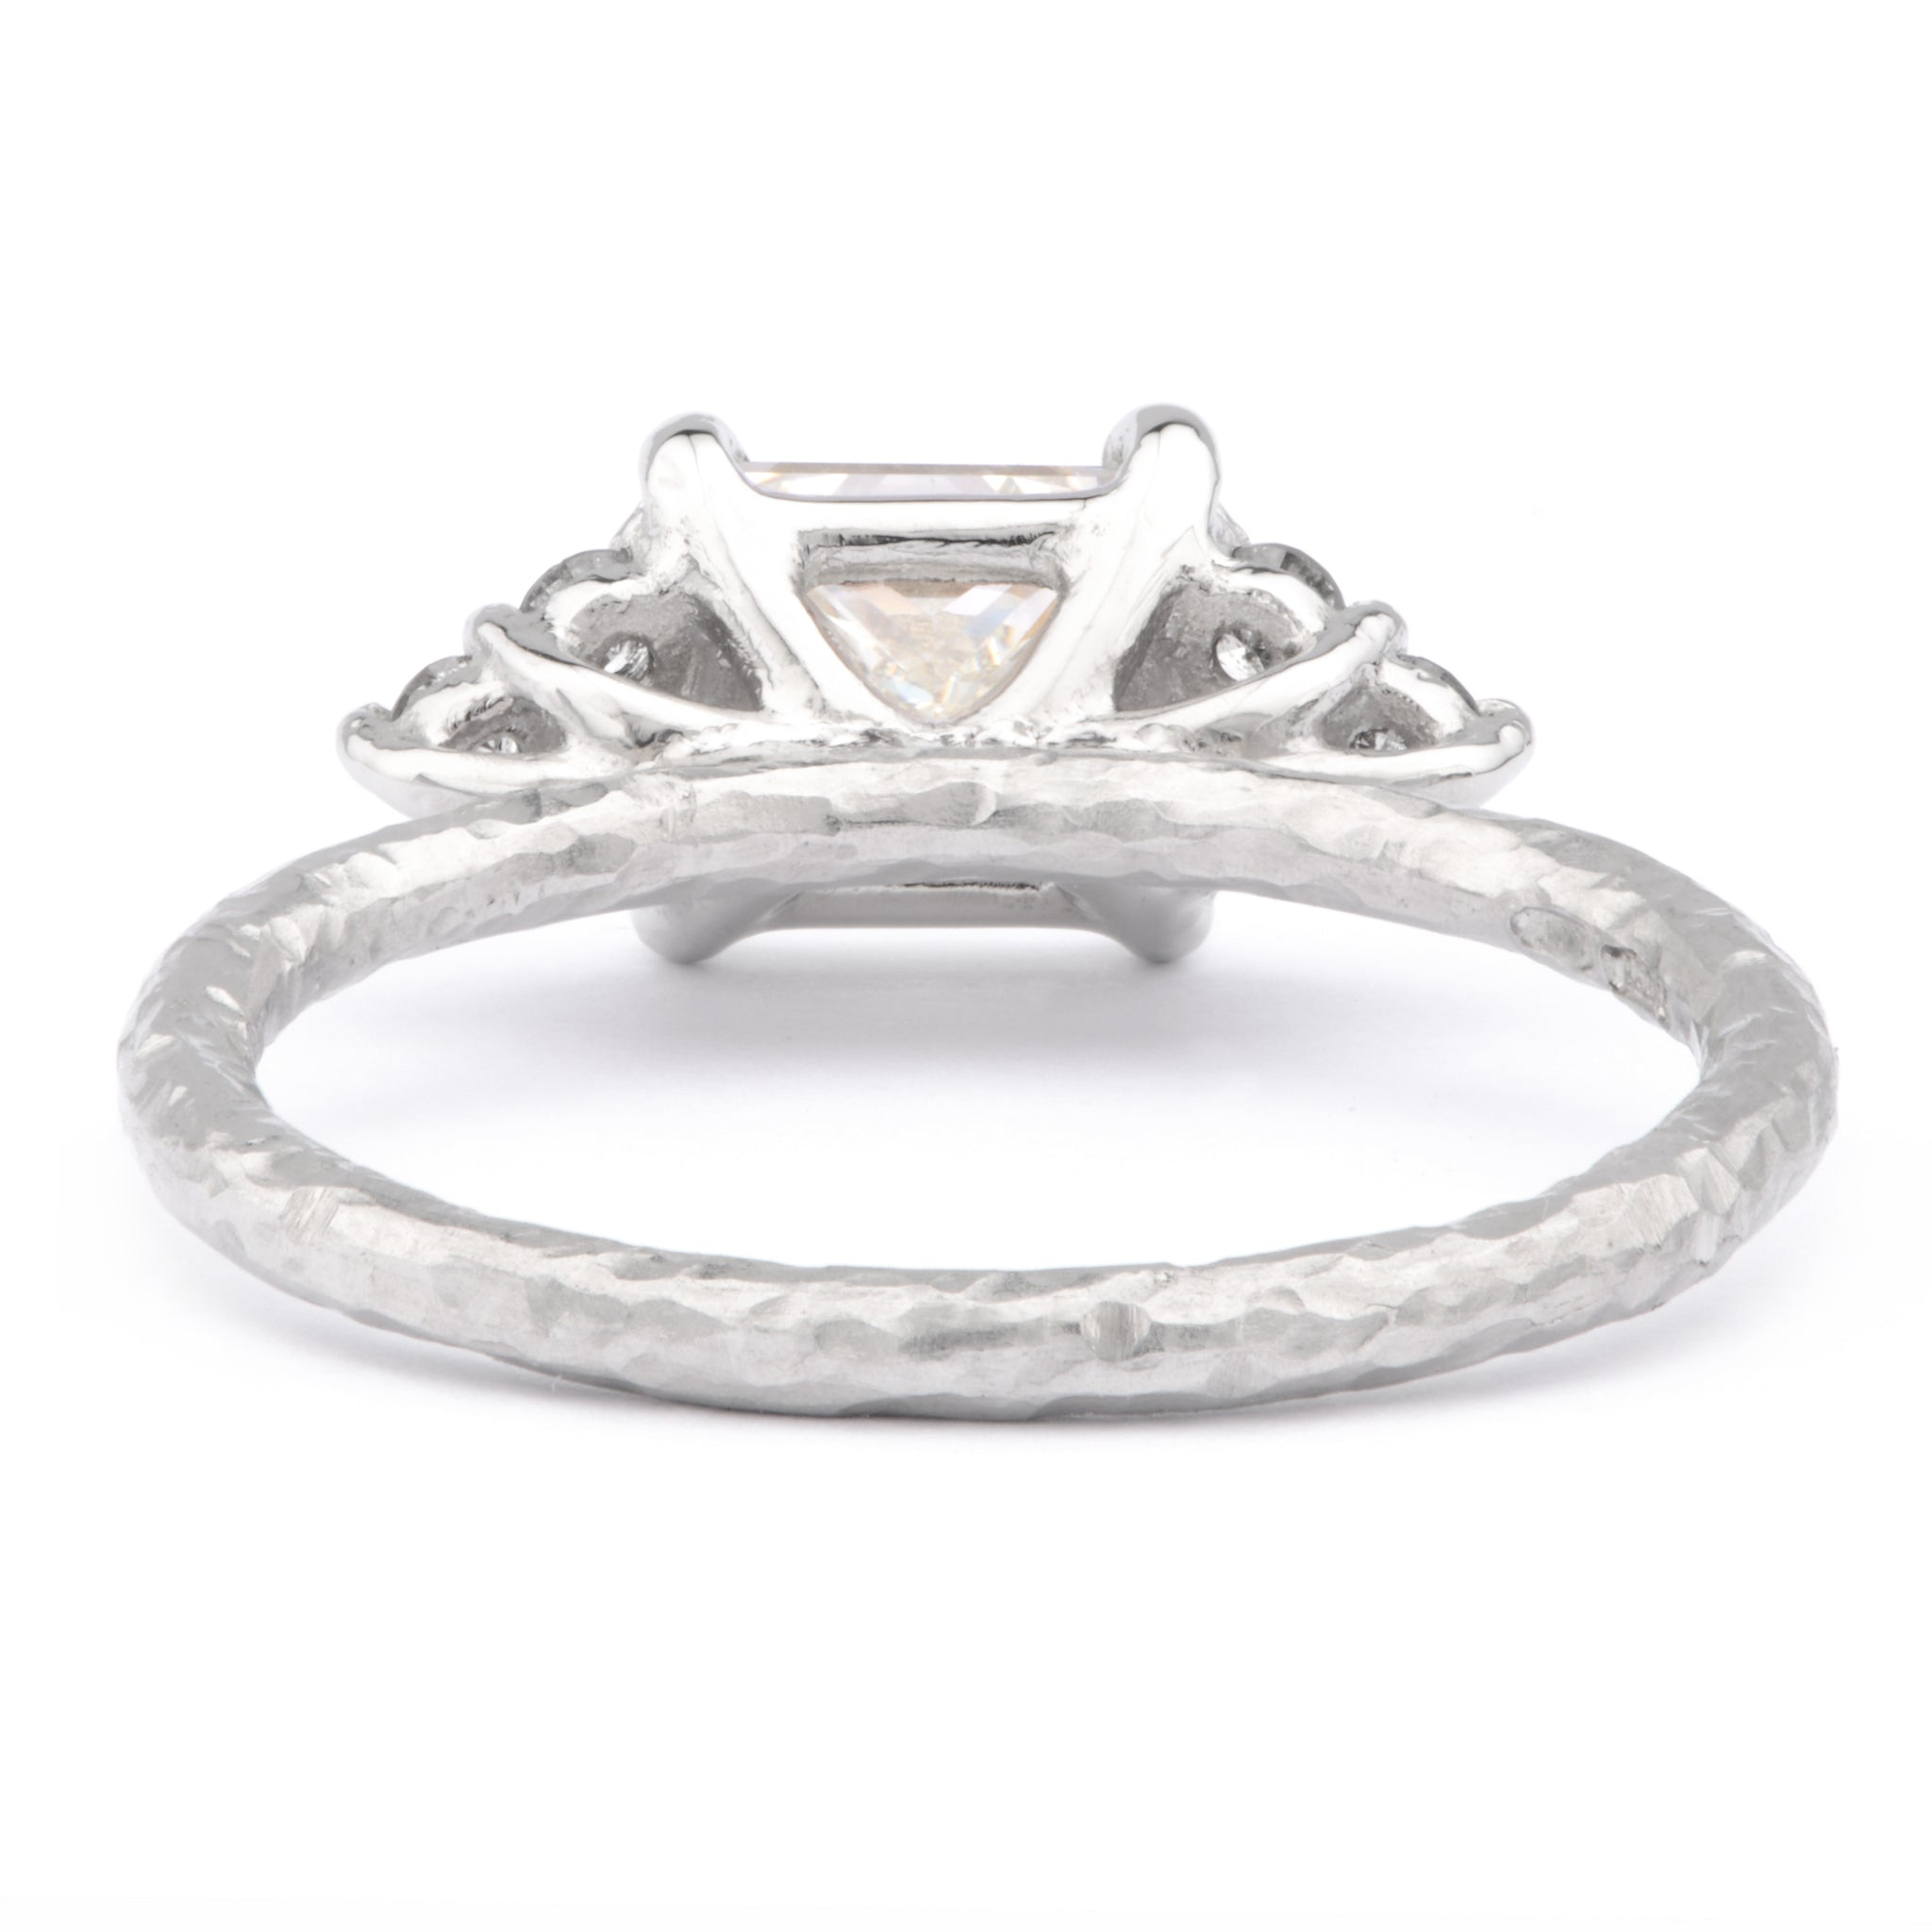 1.25ct Princess Cut Diamond and Platinum Ring - James Newman Jewellery